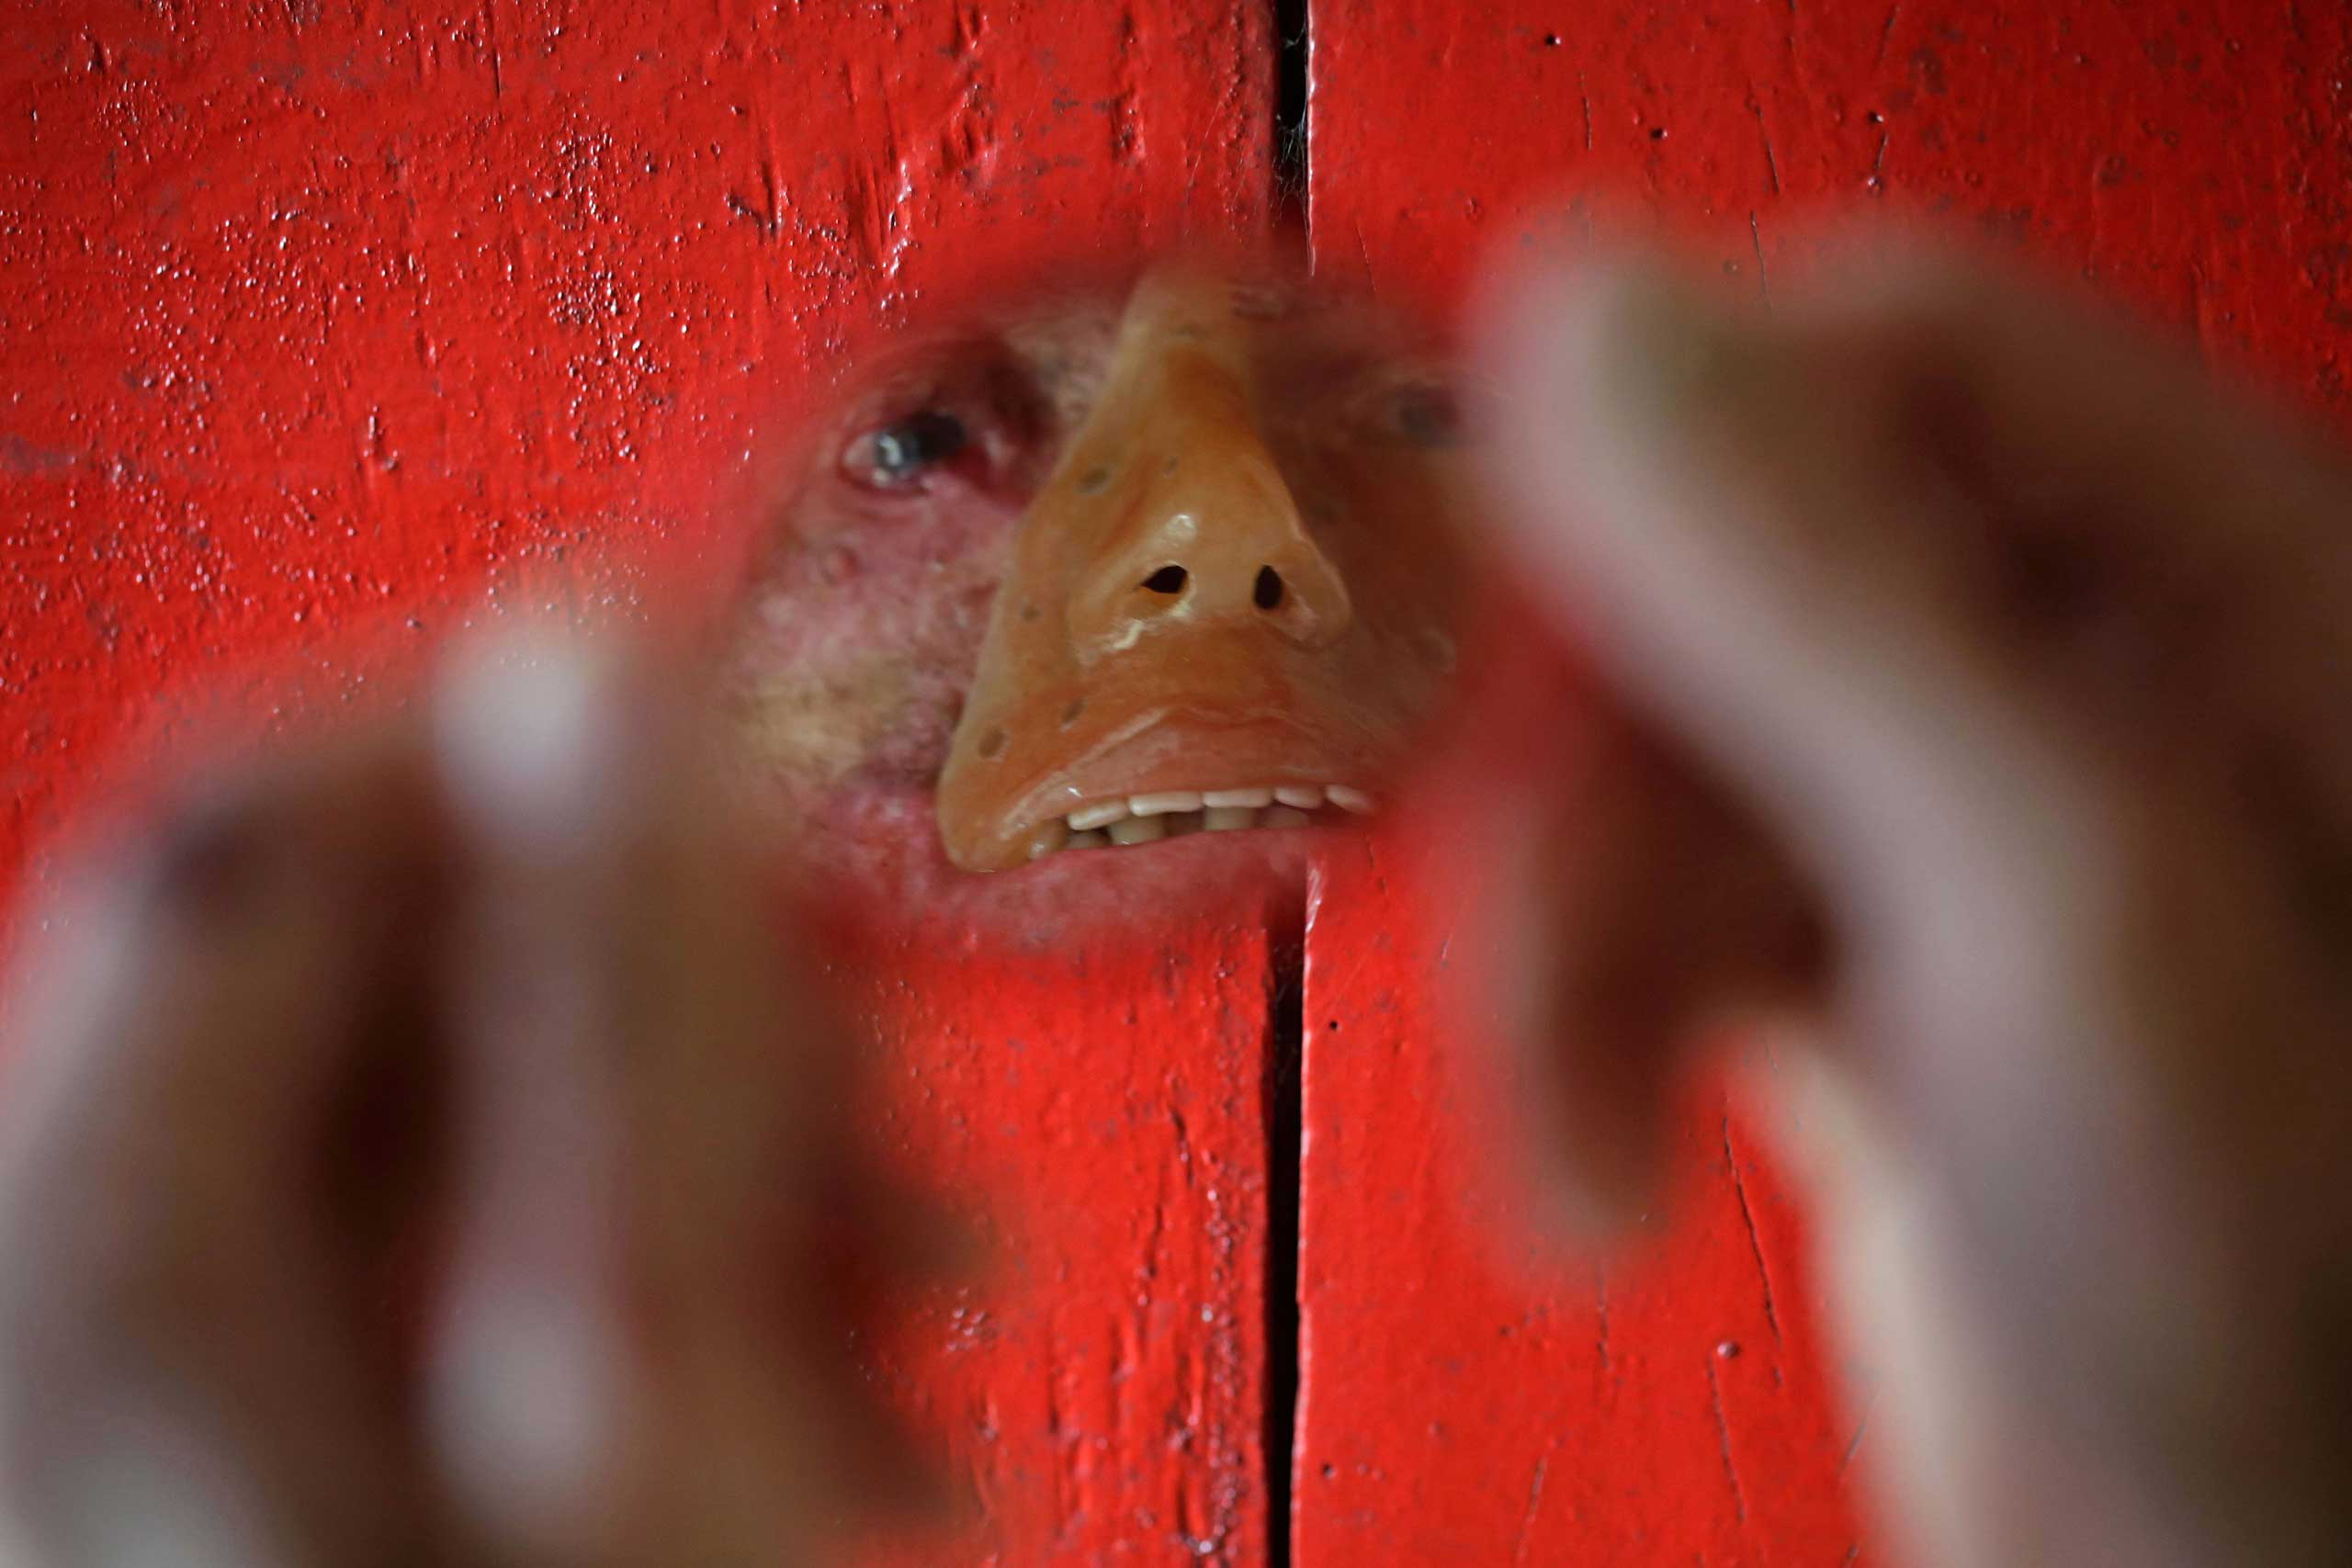 Djalma Antonio Jardim who has a rare inherited skin disease known as xeroderma pigmentosum looks in a mirror at his home in the Araras community of Brazil's Goias state, March 3, 2014.